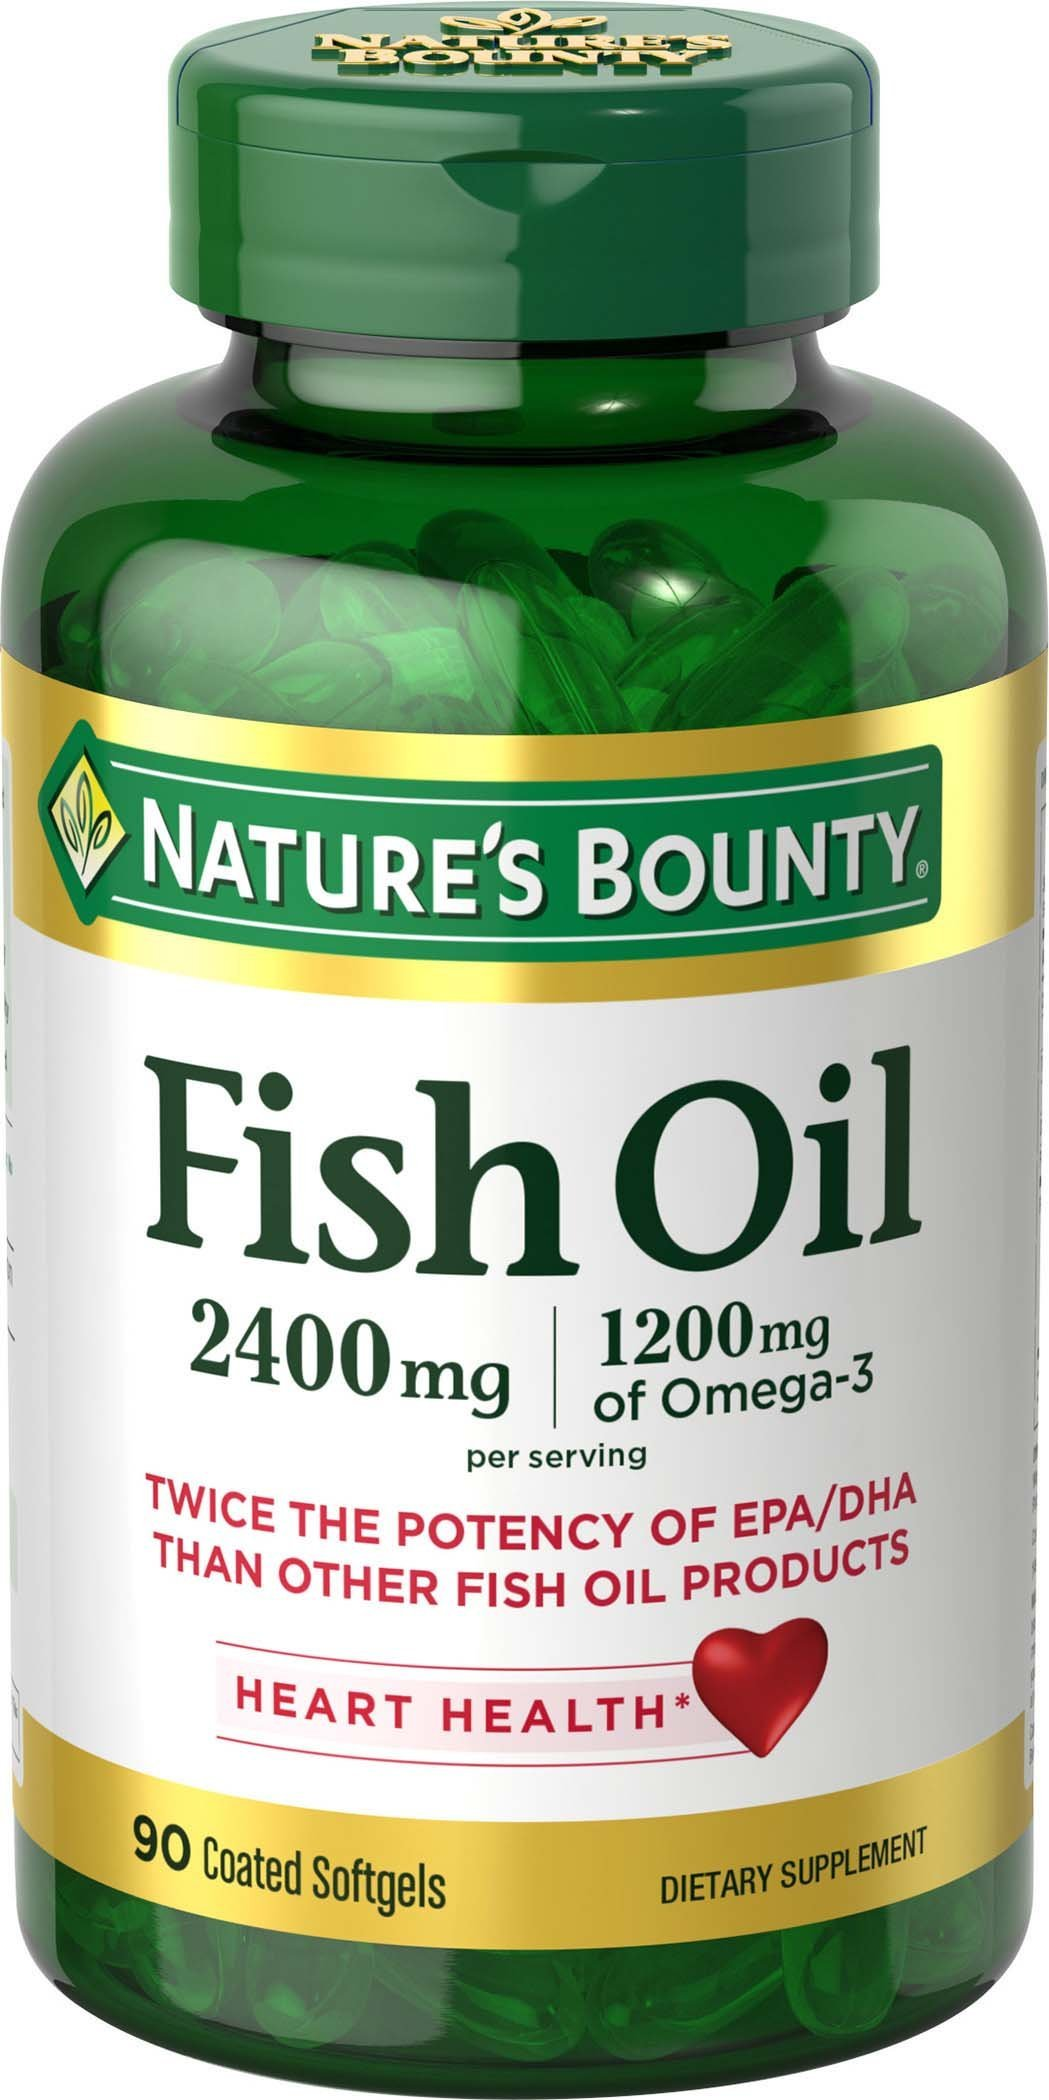 Nature's Bounty Fish Oil 2400 mg Softgels, 90 ea by Nature's Bounty